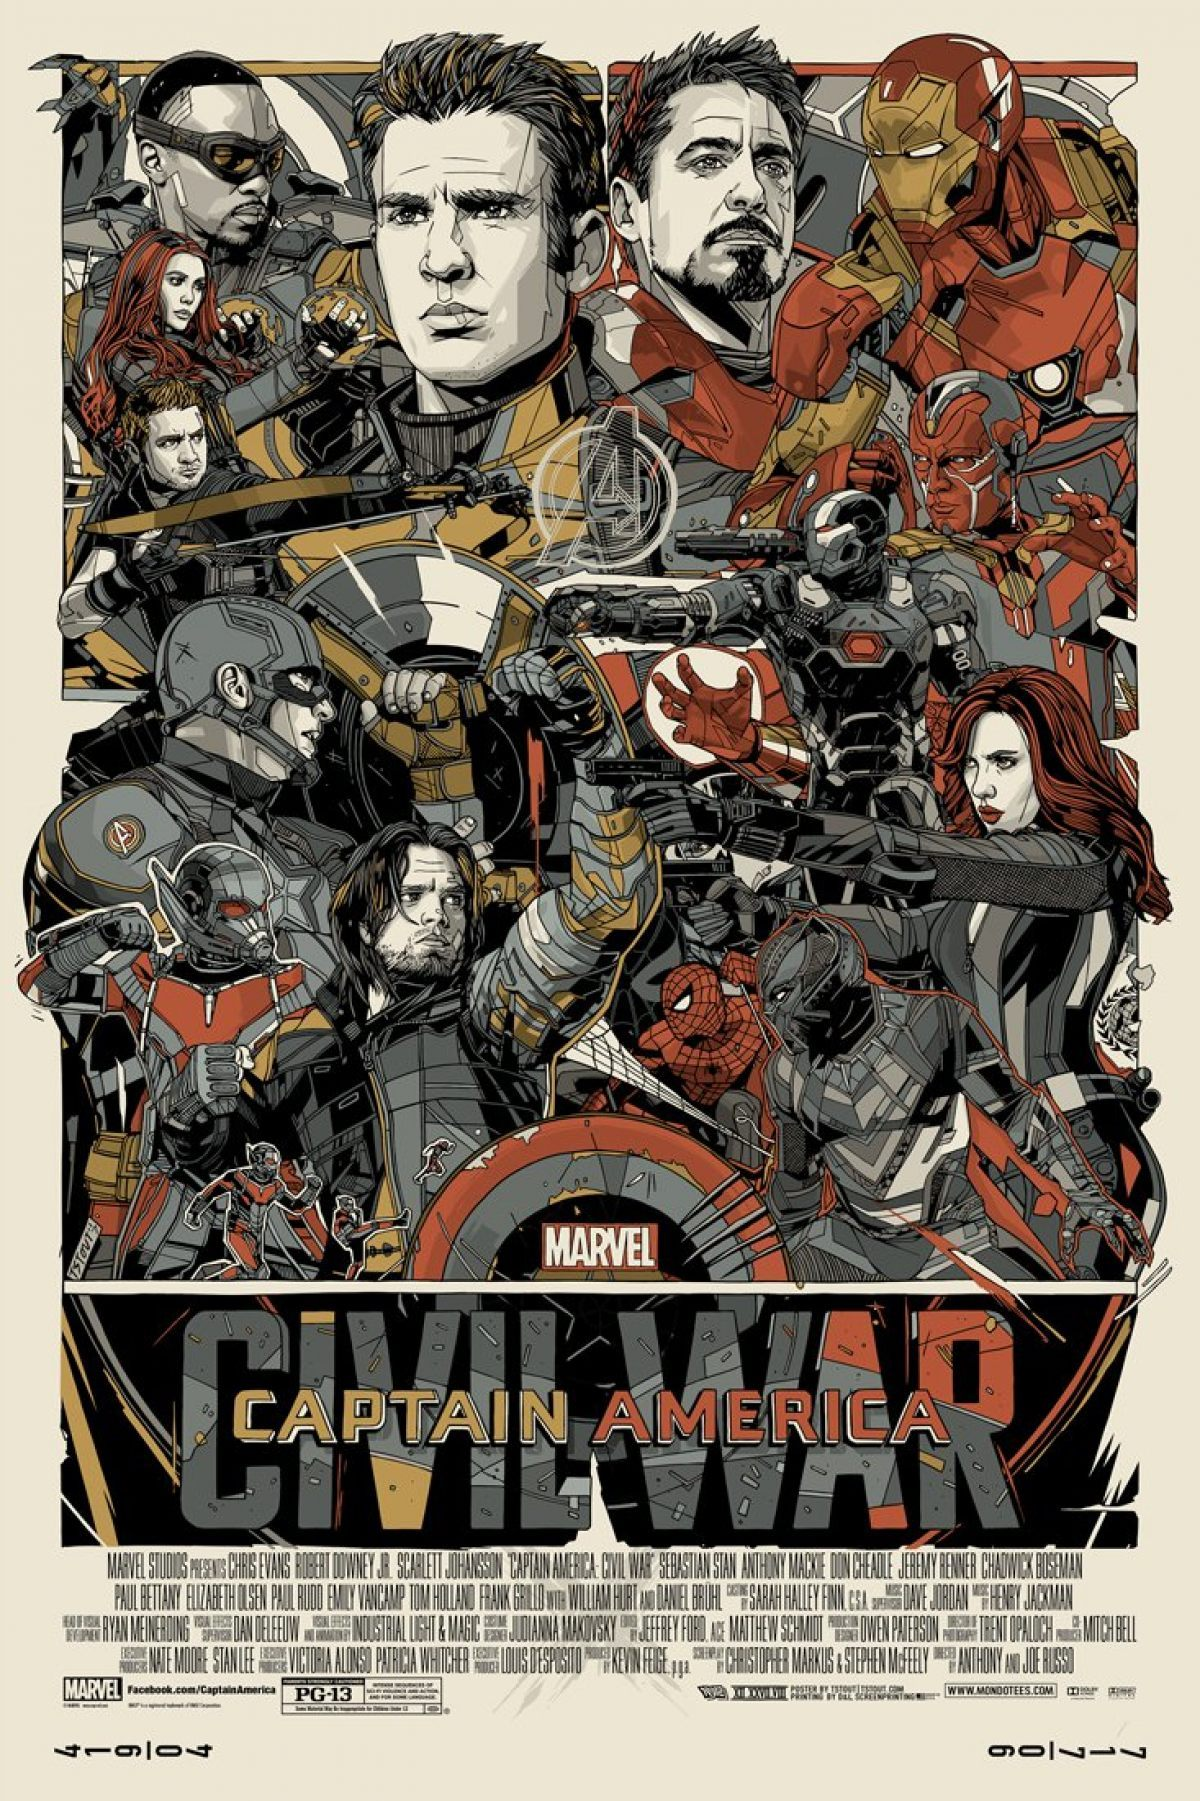 Tyler Stout is Back With an Amazing Captain America: Civil War Print for Mondo !